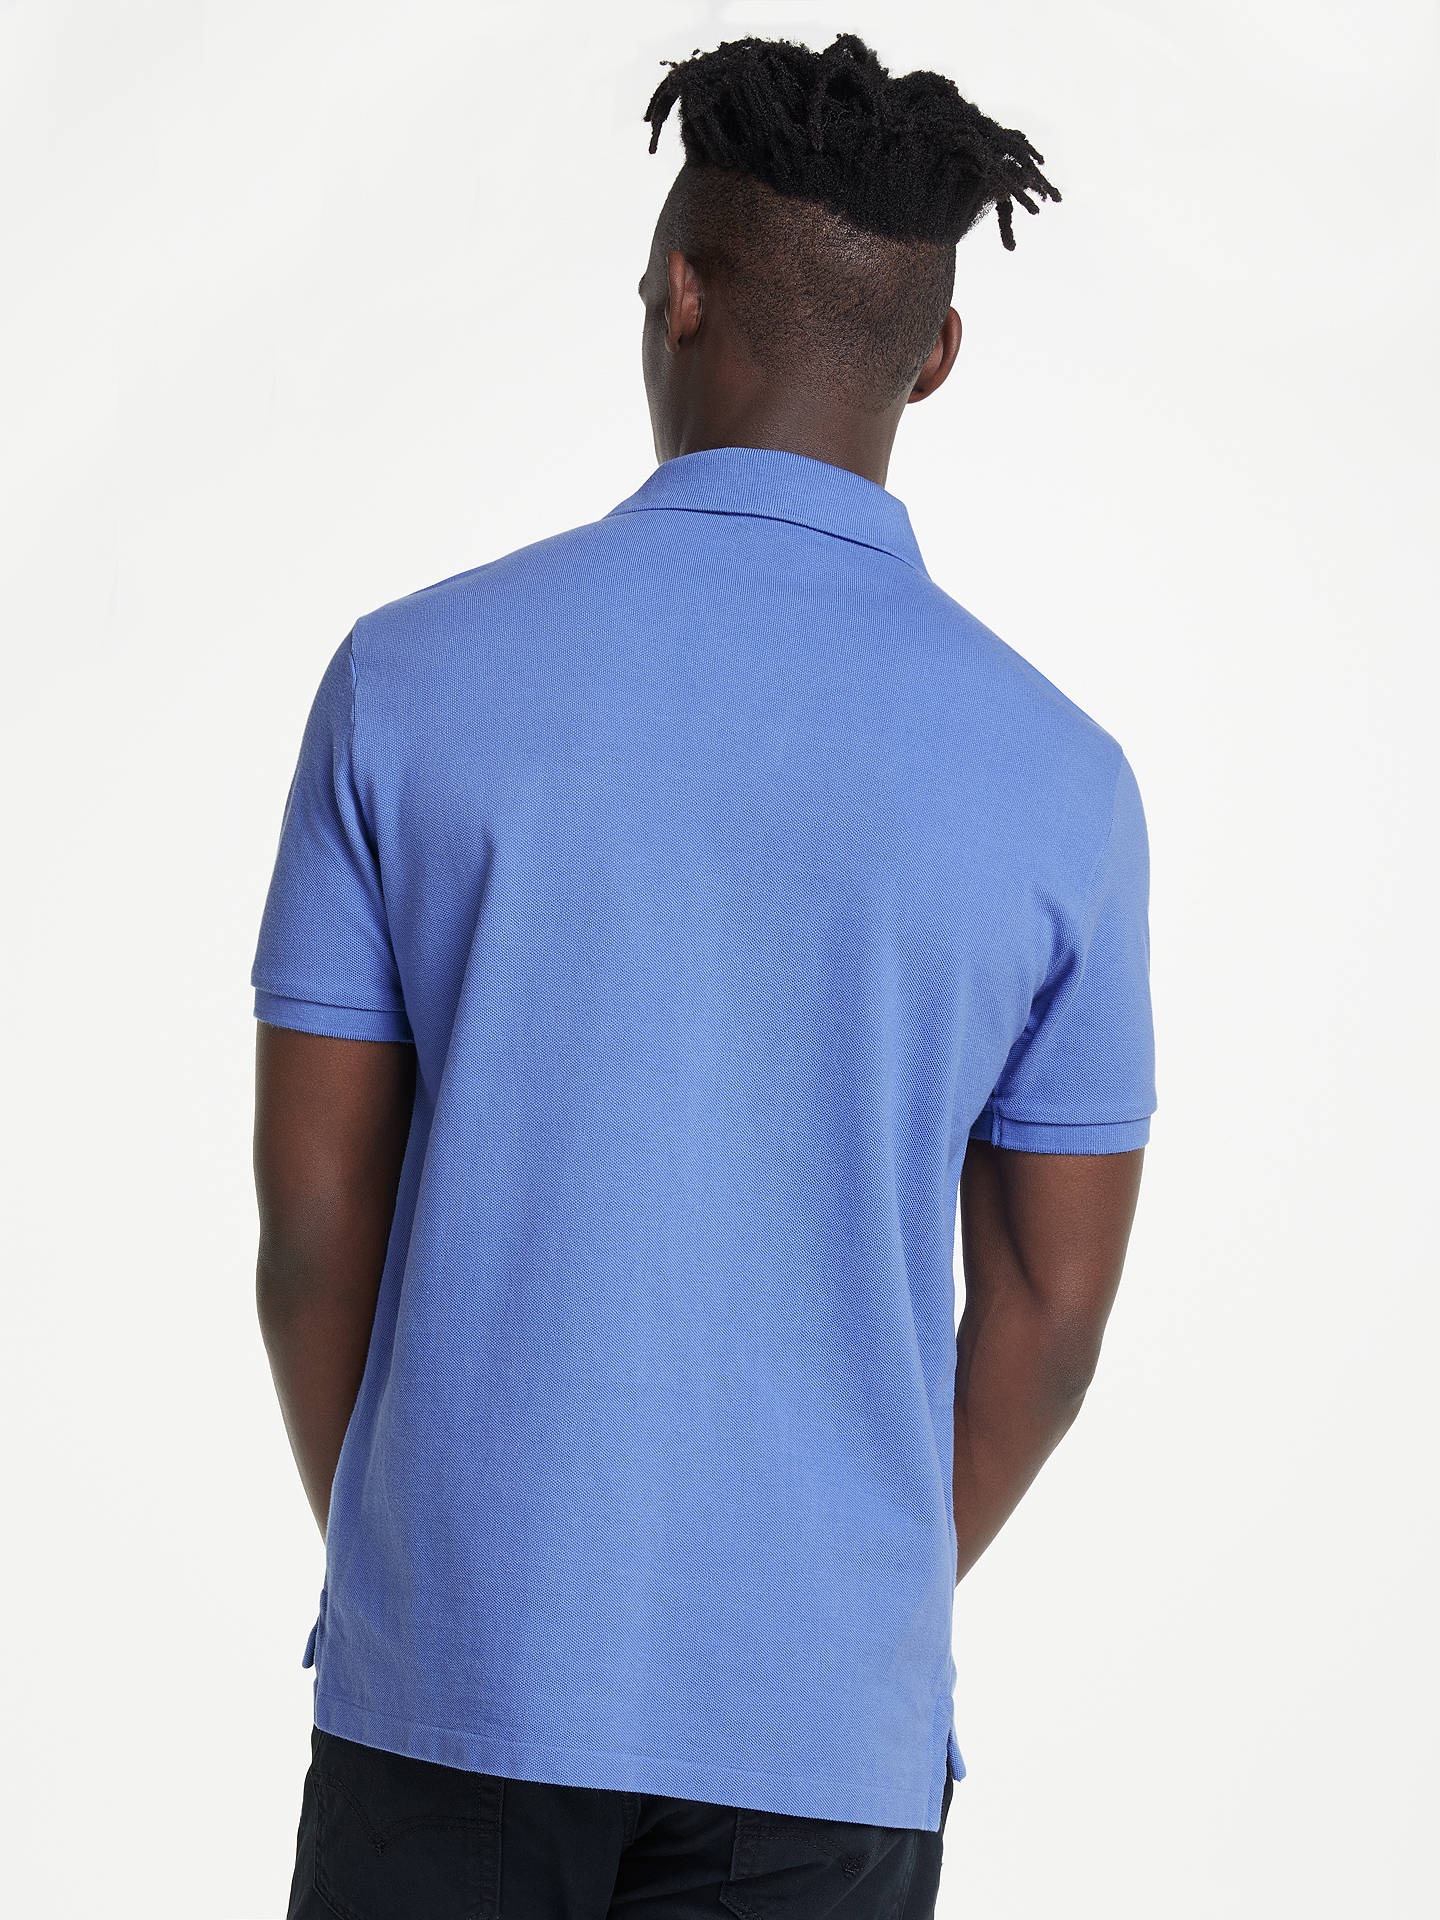 Buy Polo Ralph Lauren Custom Slim Fit Weathered Polo Shirt, City Blue, XL Online at johnlewis.com